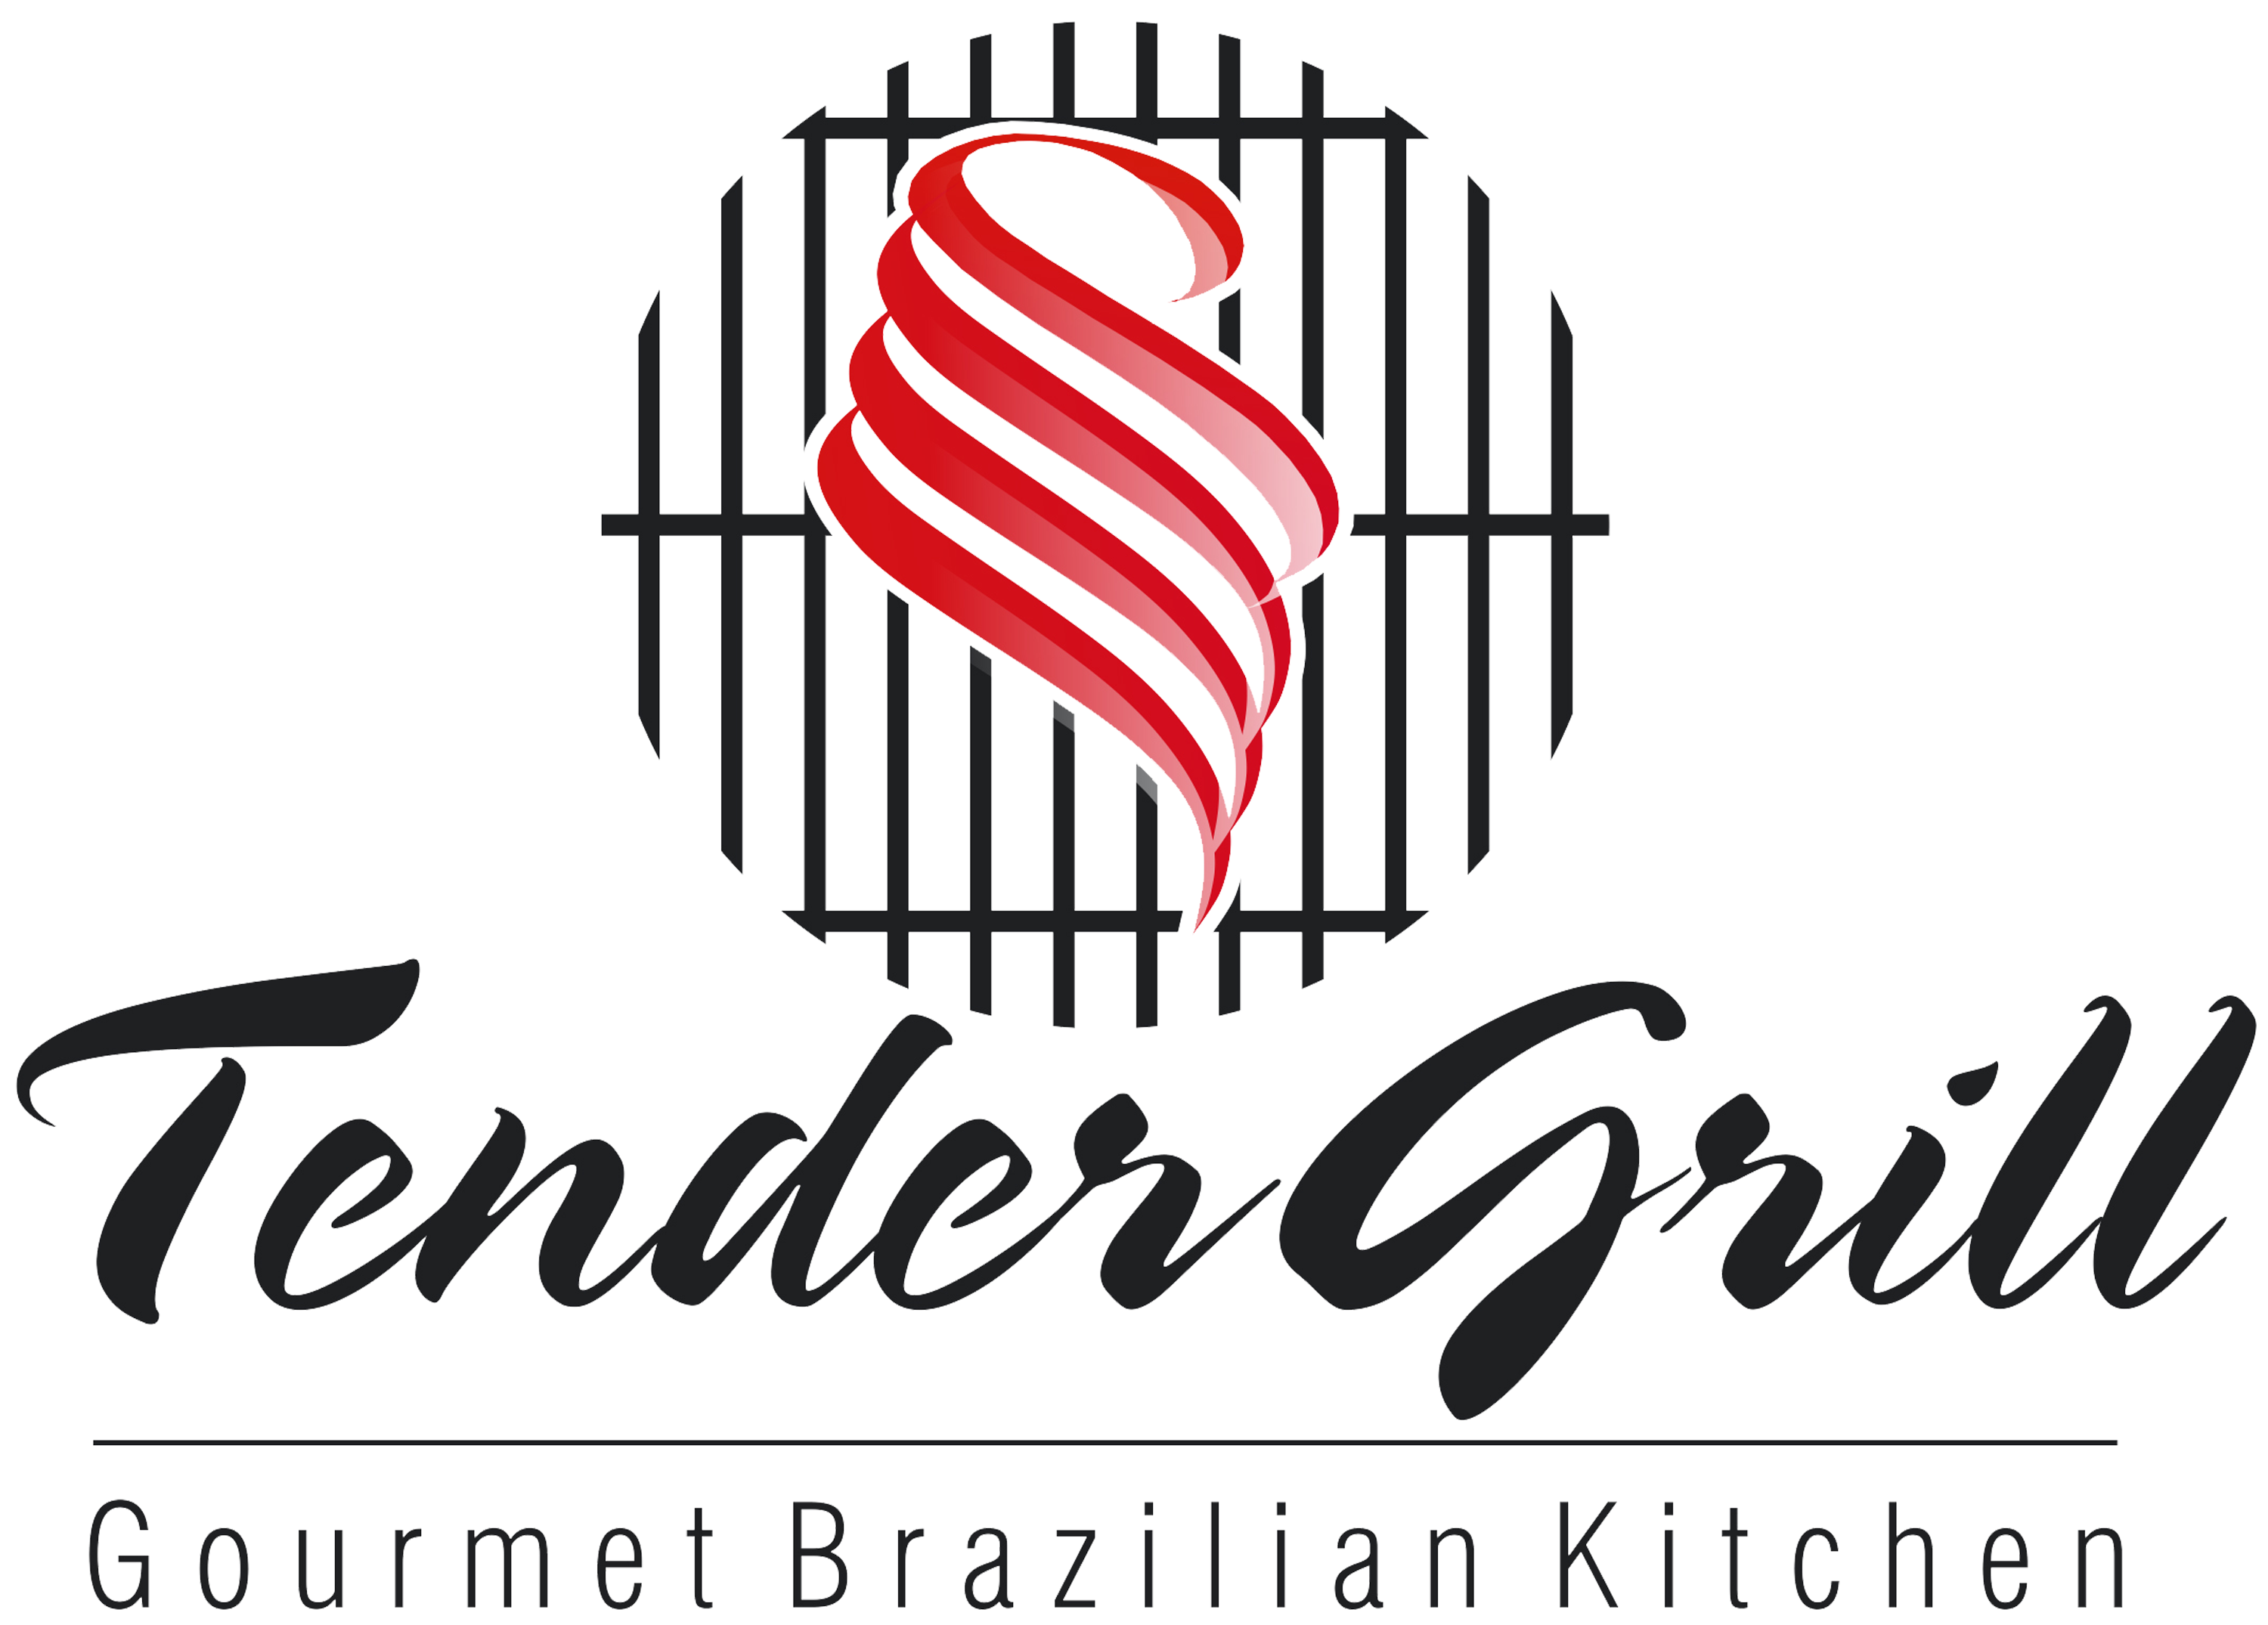 Tender Grill Gourmet Brazilian Kitchen